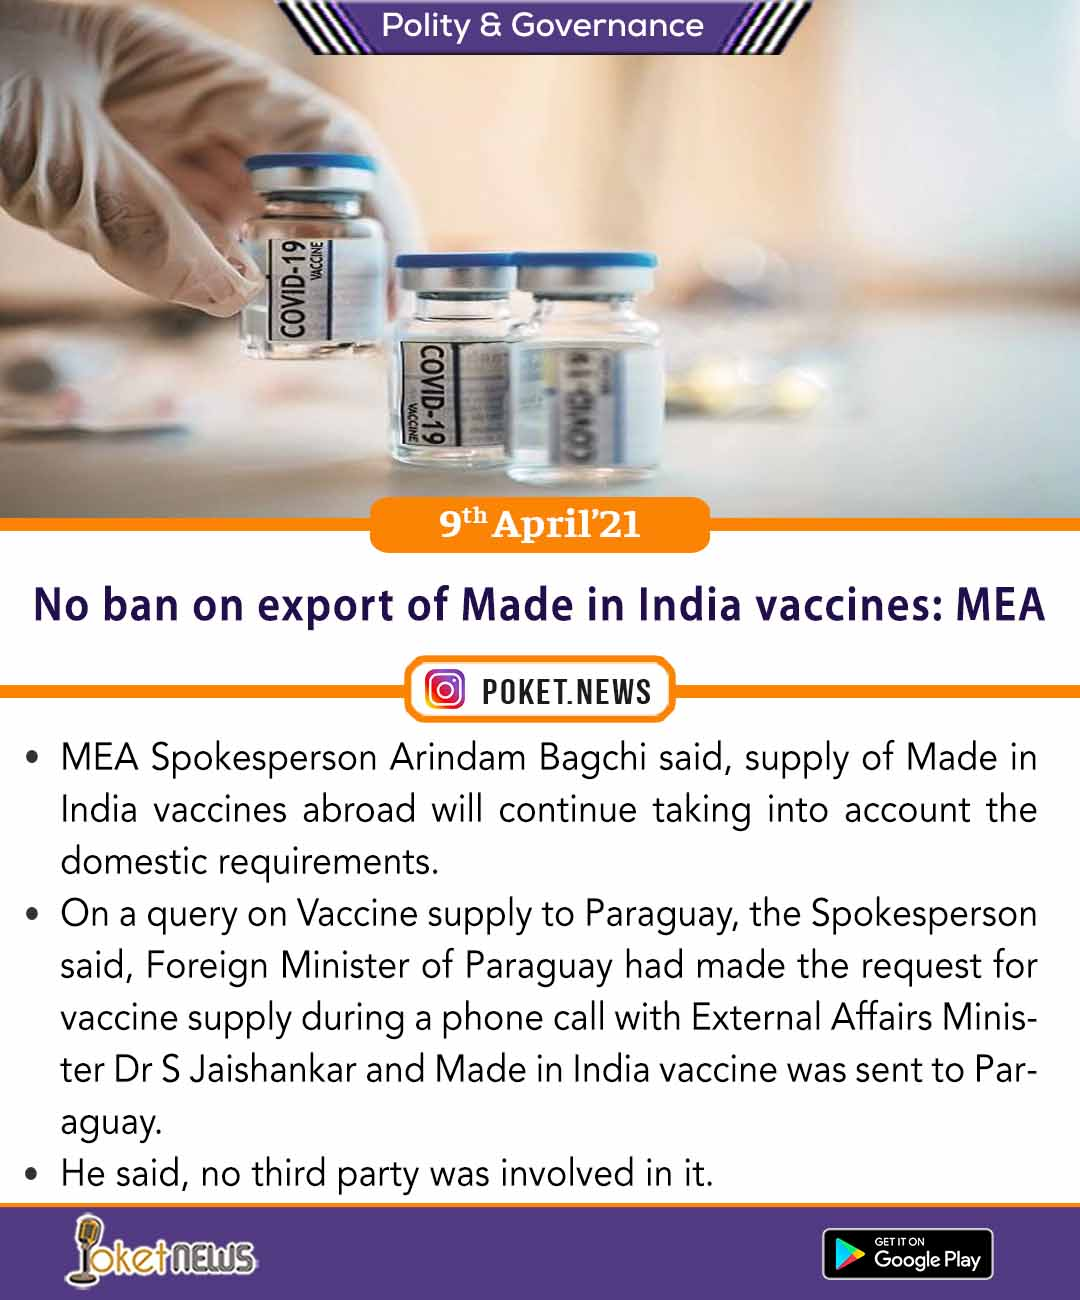 No ban on export of Made in India vaccines: MEA